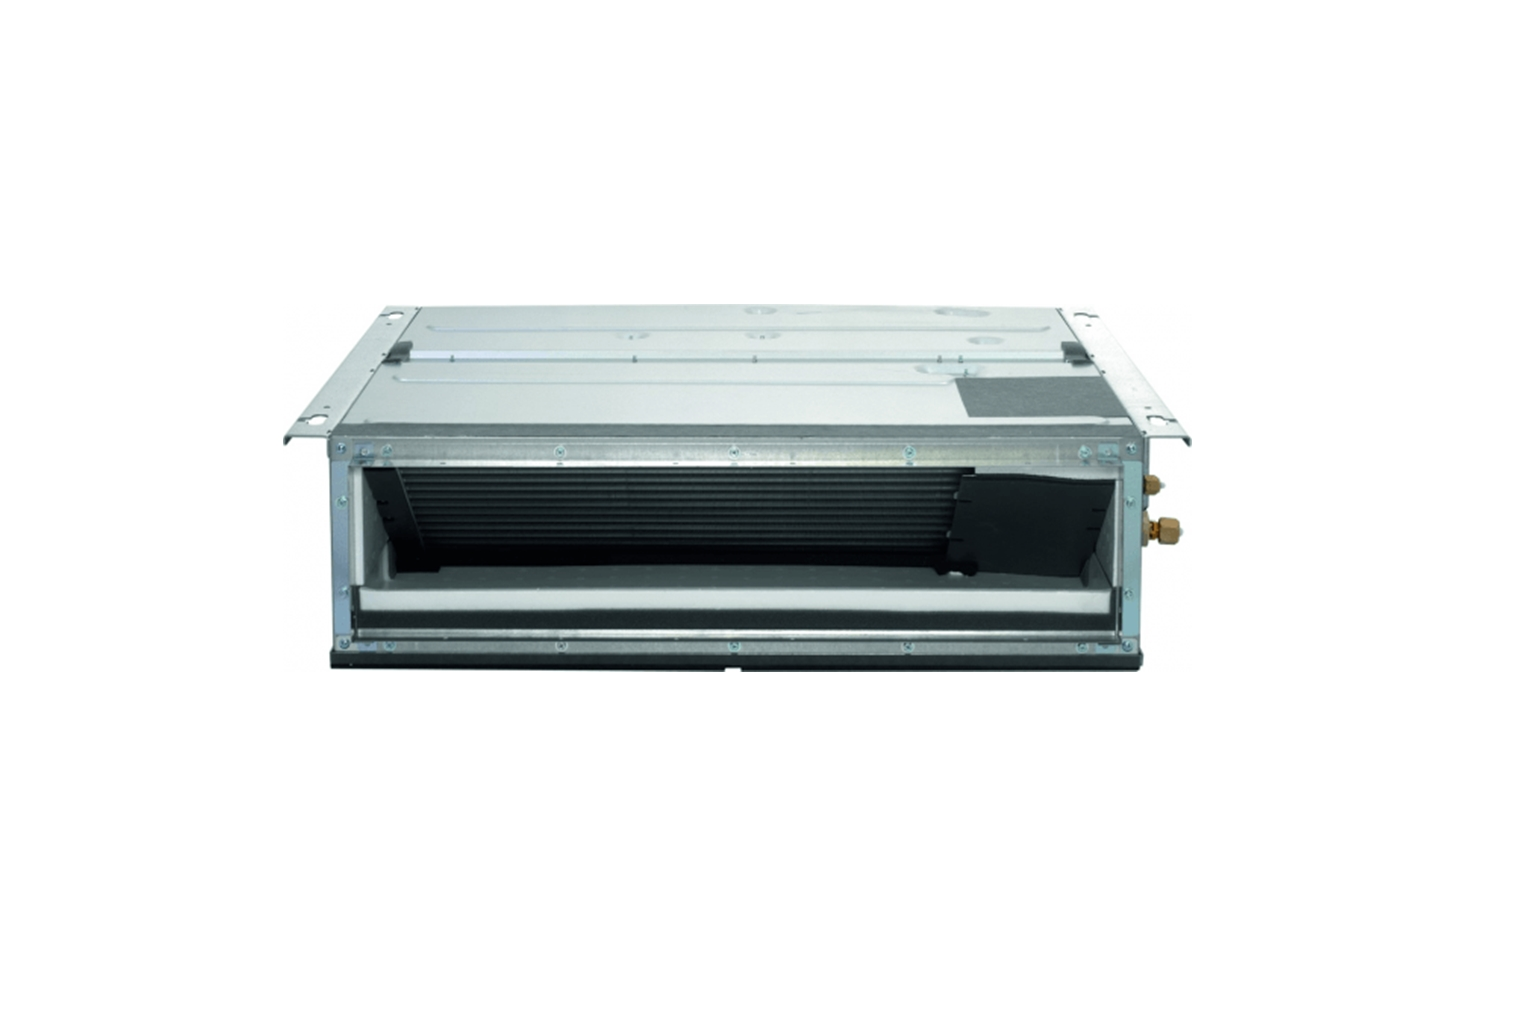 Aer conditionat Daikin Duct FDXM-F9